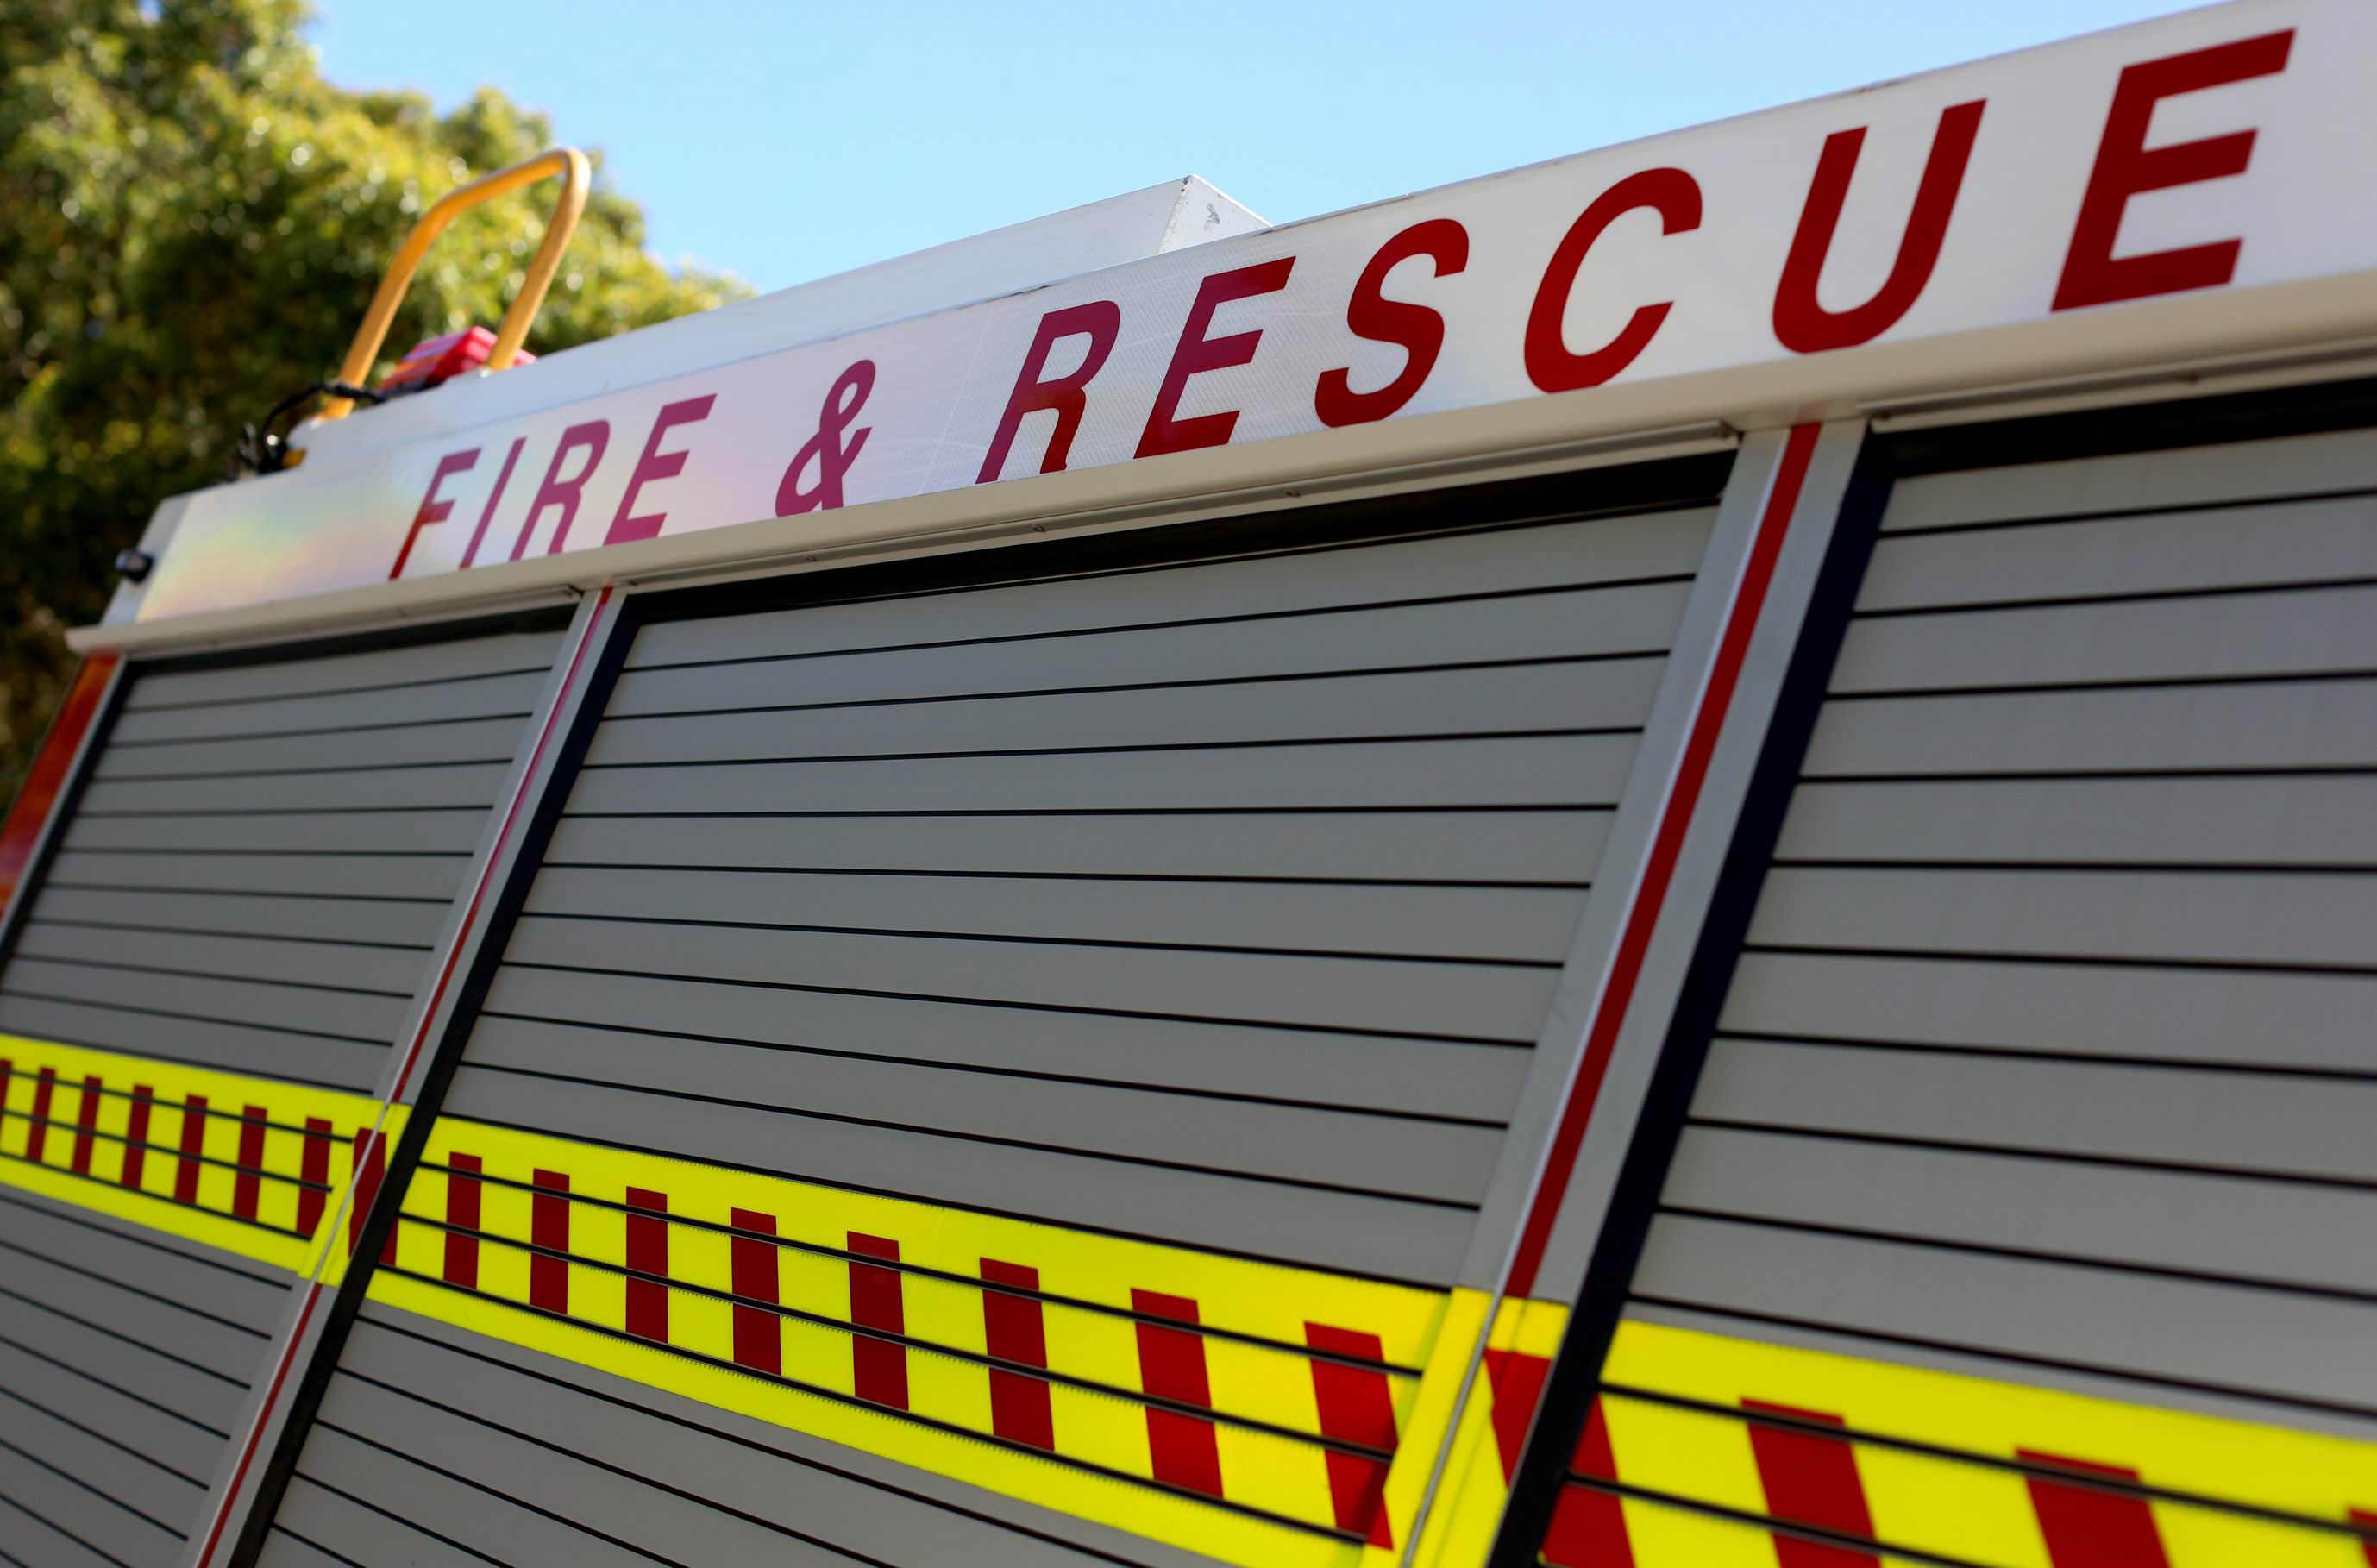 Bushfire advice issued for Boddington area